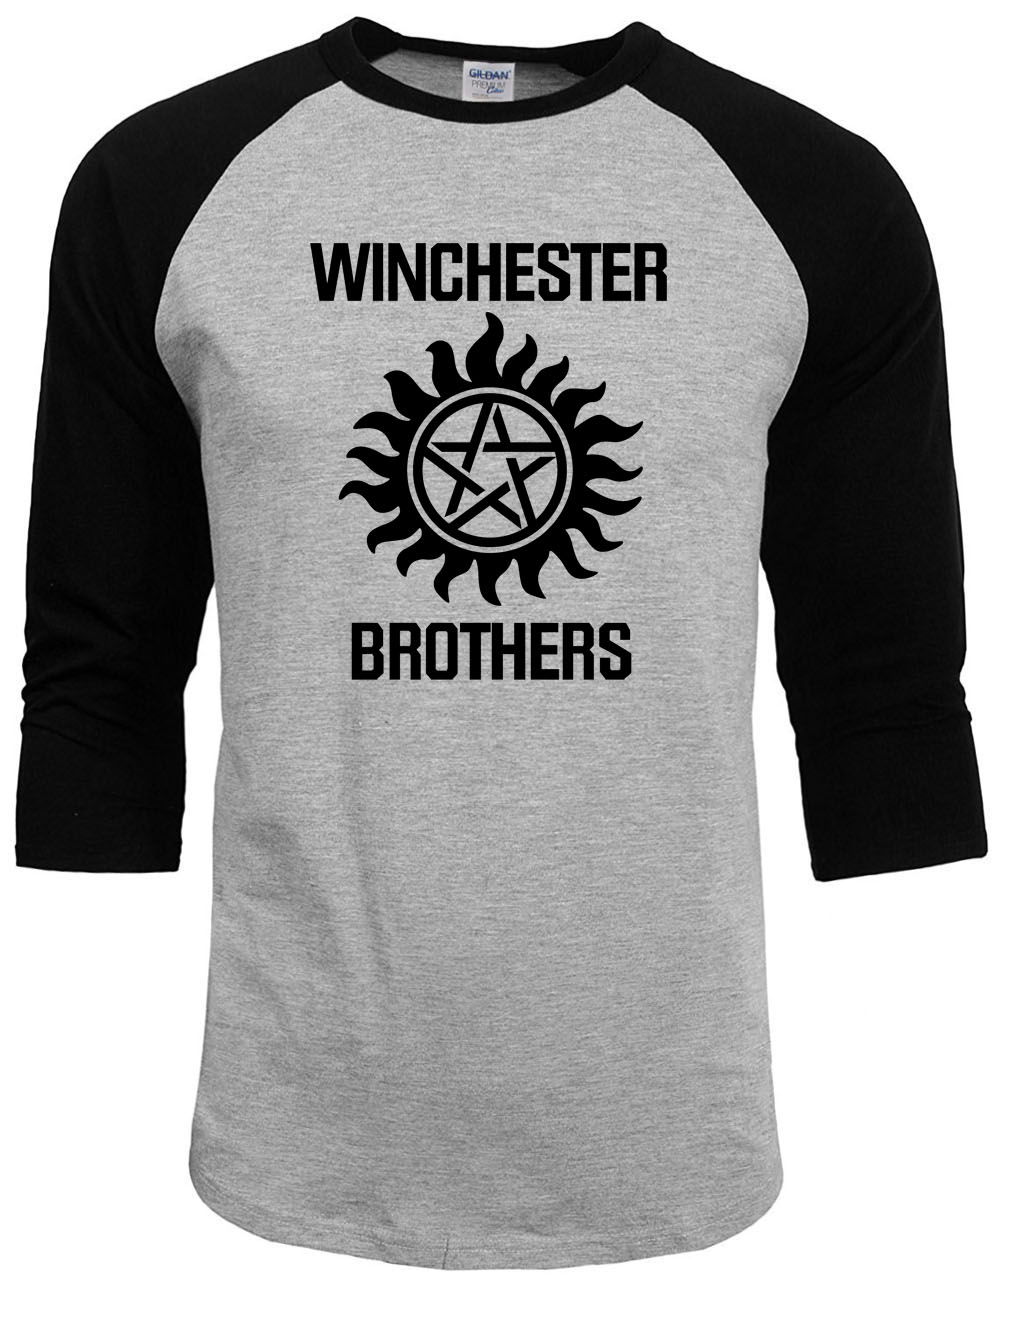 Supernatural tops tee   shirts   2019 summer autumn raglan sleeve funny crossfit winchester brothers   t     shirts   men streetwear homme